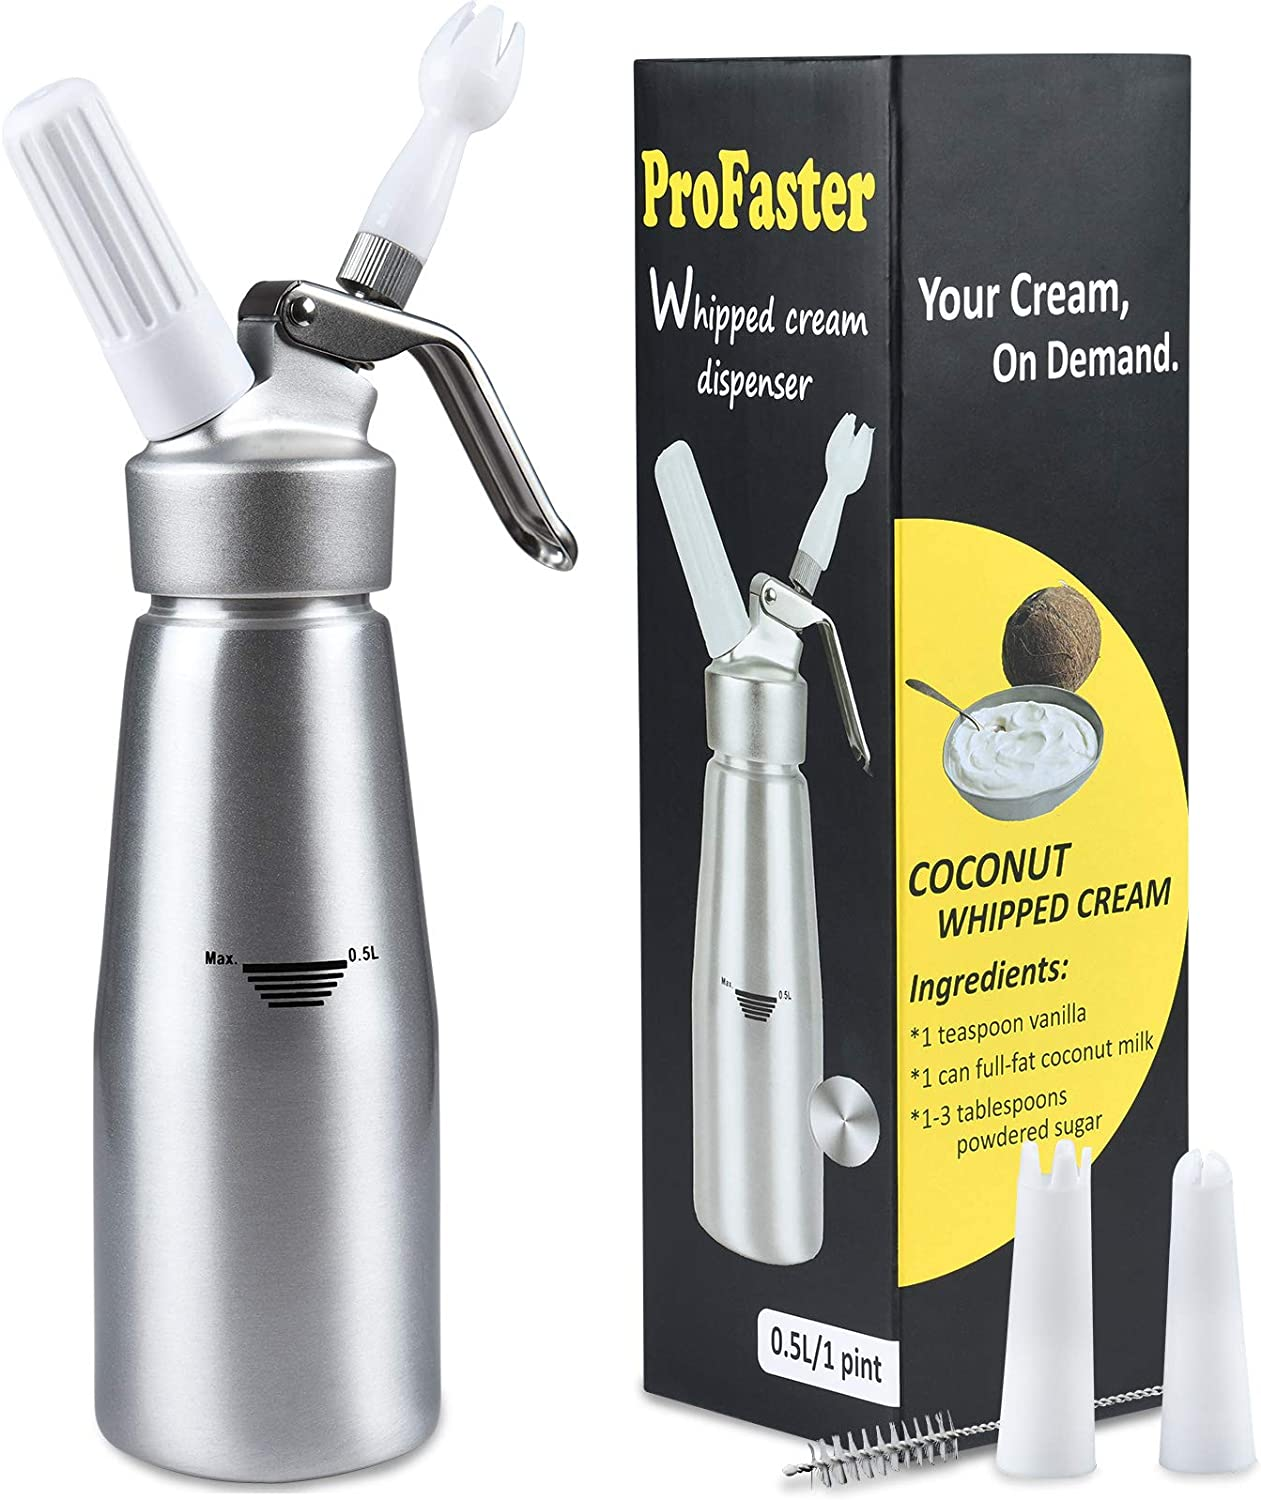 Profaster Whipped Cream Dispenser-1 Pint Professional Whip Cream Canister with 15 Different Cream of Recipe for Homemade Whipped Cream Use 8g N2O Whip Cream Dispenser Chargers (Not Included)